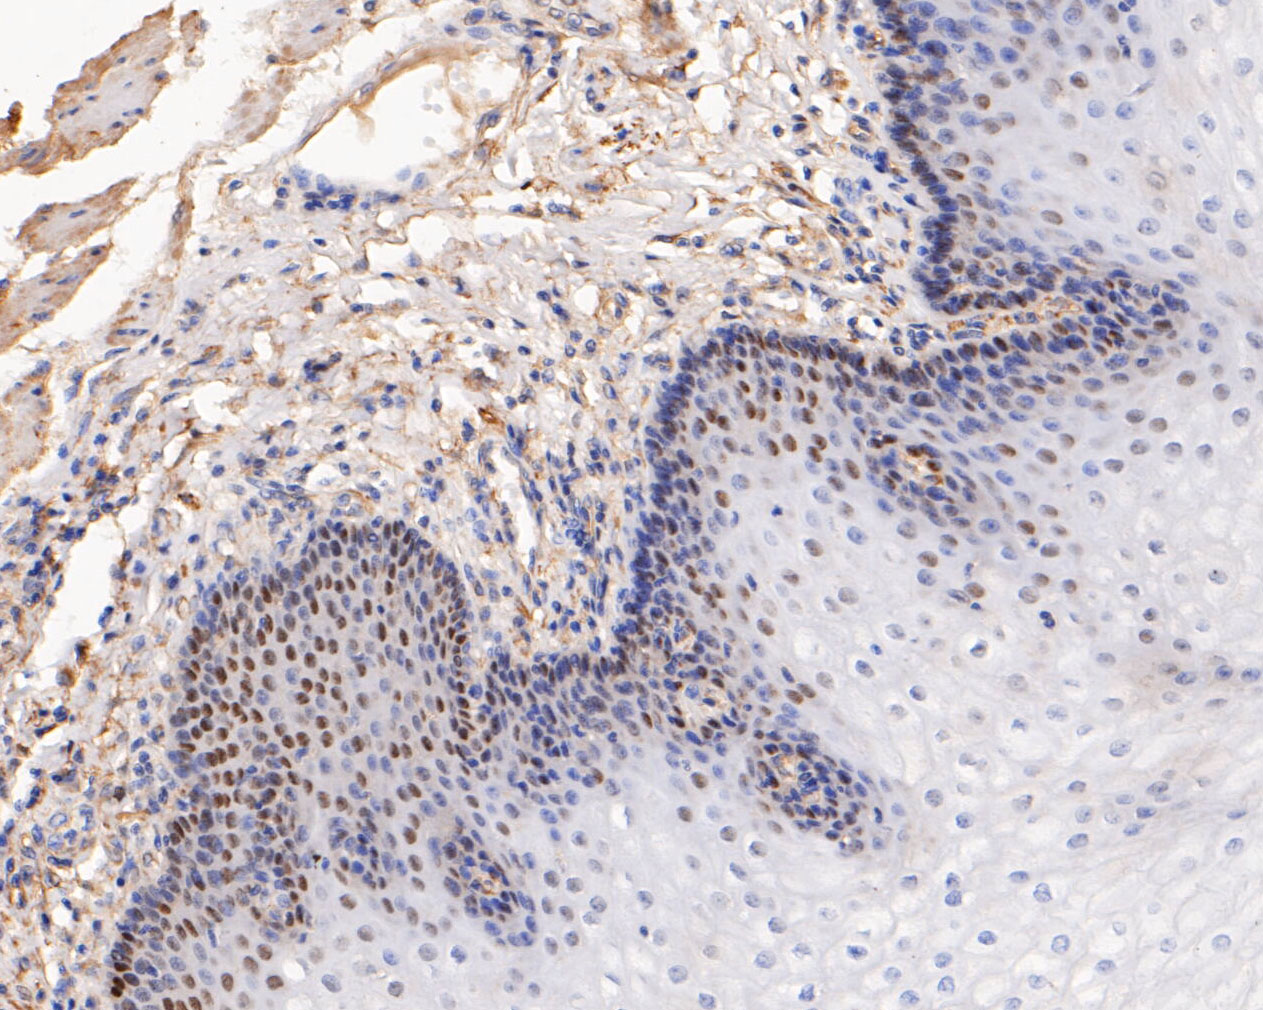 Immunohistochemical analysis of paraffin-embedded human esophagus tissue using anti-p63 antibody. The section was pre-treated using heat mediated antigen retrieval with sodium citrate buffer (pH 6.0) for 20 minutes. The tissues were blocked in 5% BSA for 30 minutes at room temperature, washed with ddH2O and PBS, and then probed with the primary antibody (ET1610-44, 1/50) for 30 minutes at room temperature. The detection was performed using an HRP conjugated compact polymer system. DAB was used as the chromogen. Tissues were counterstained with hematoxylin and mounted with DPX.